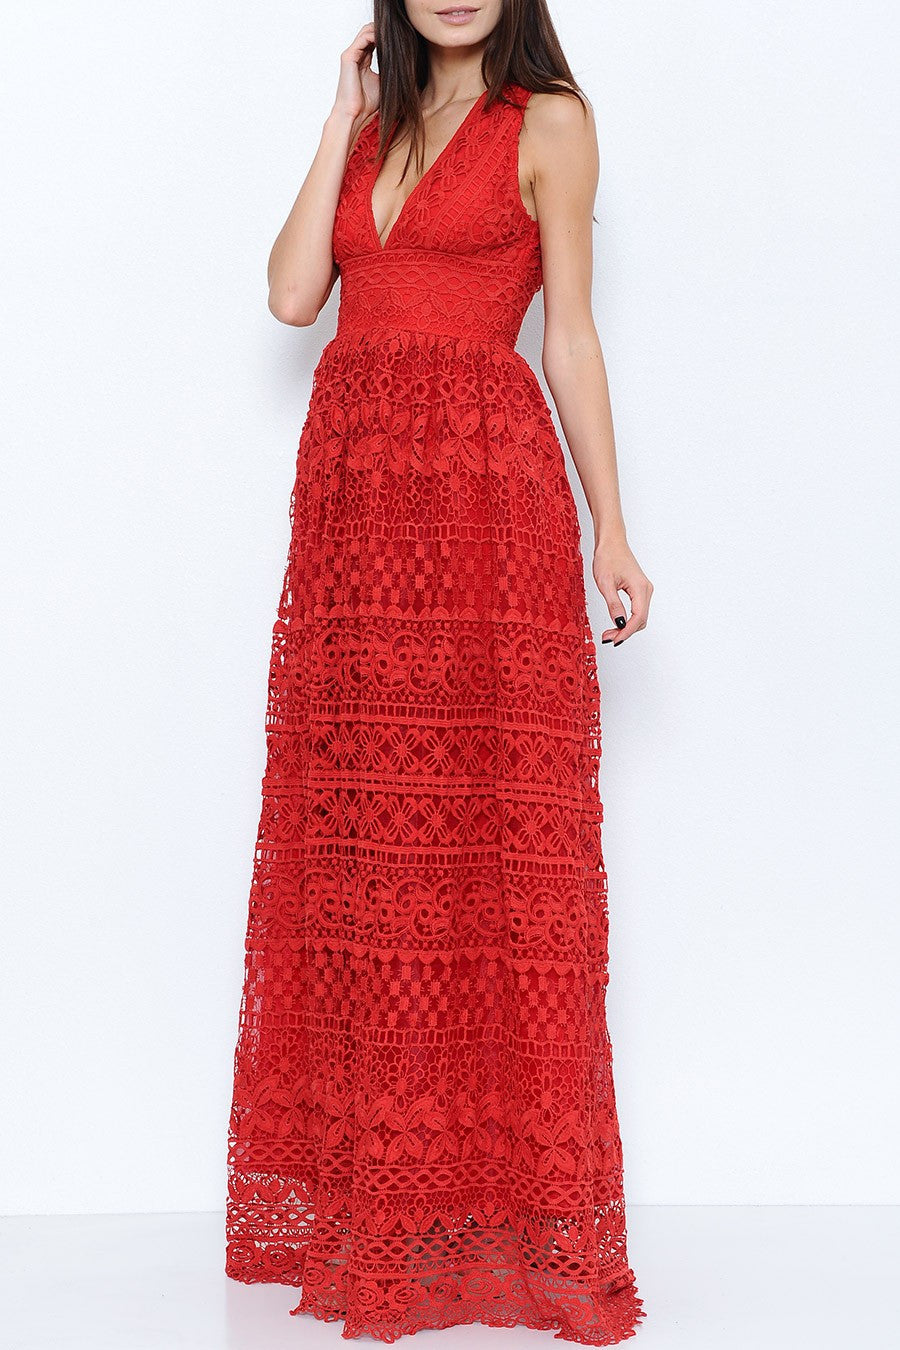 Lilith Crochet Dress